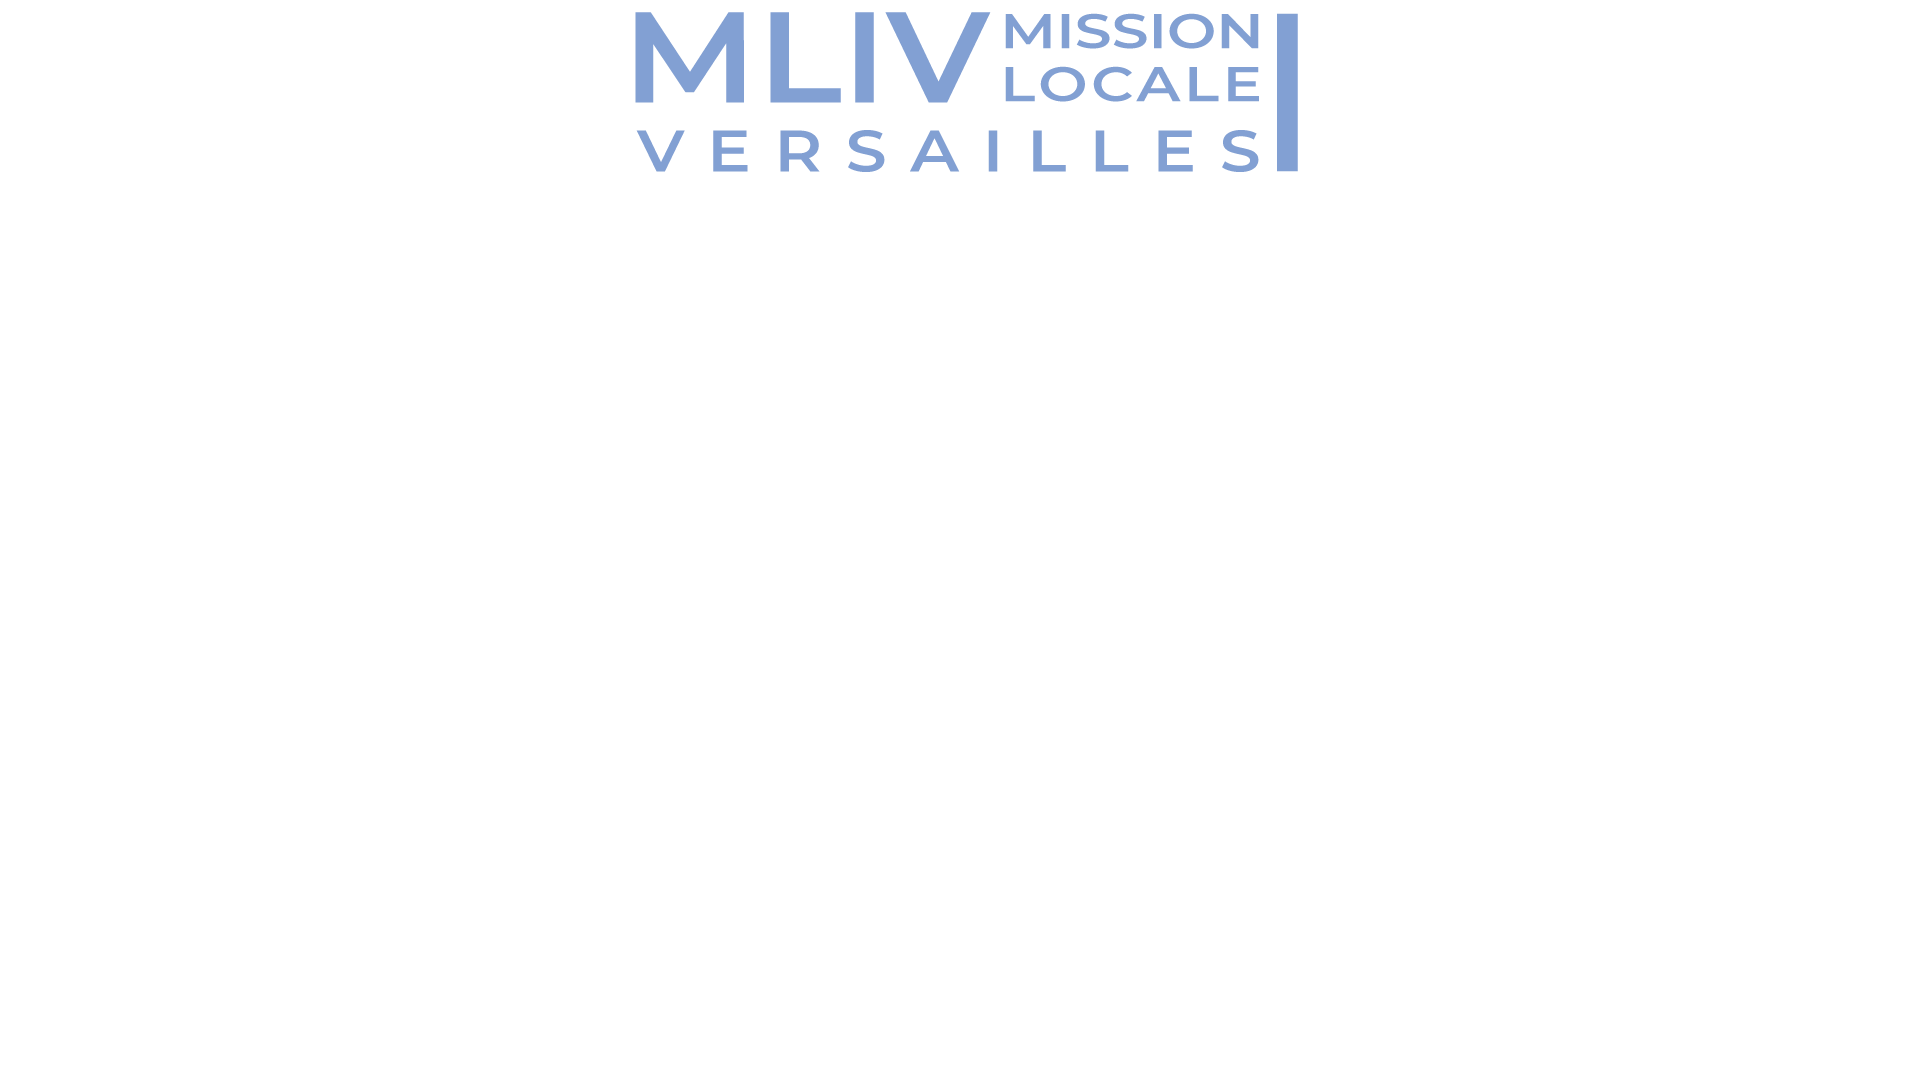 Mission Locale Intercommunale de Versailles